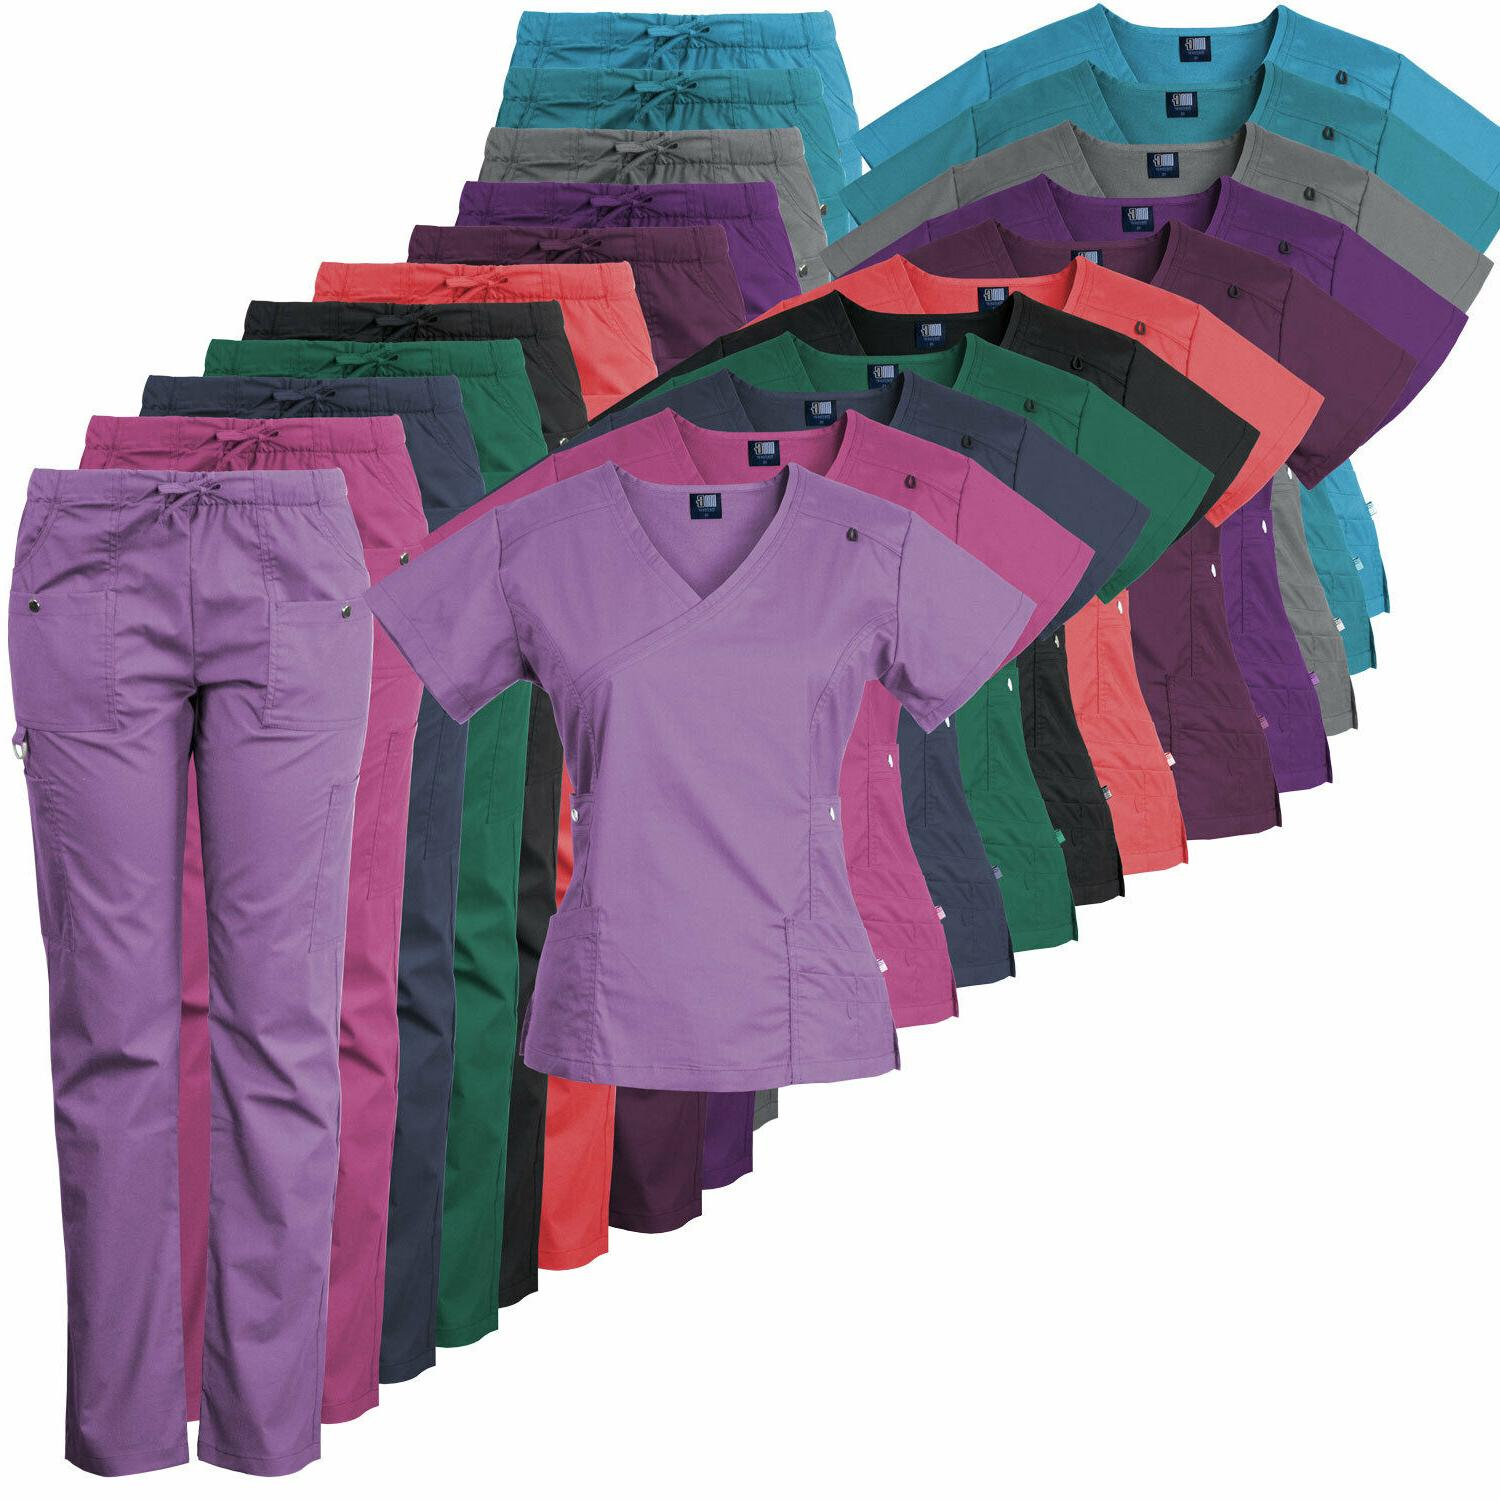 14 pocket womens stretch medical scrubs set